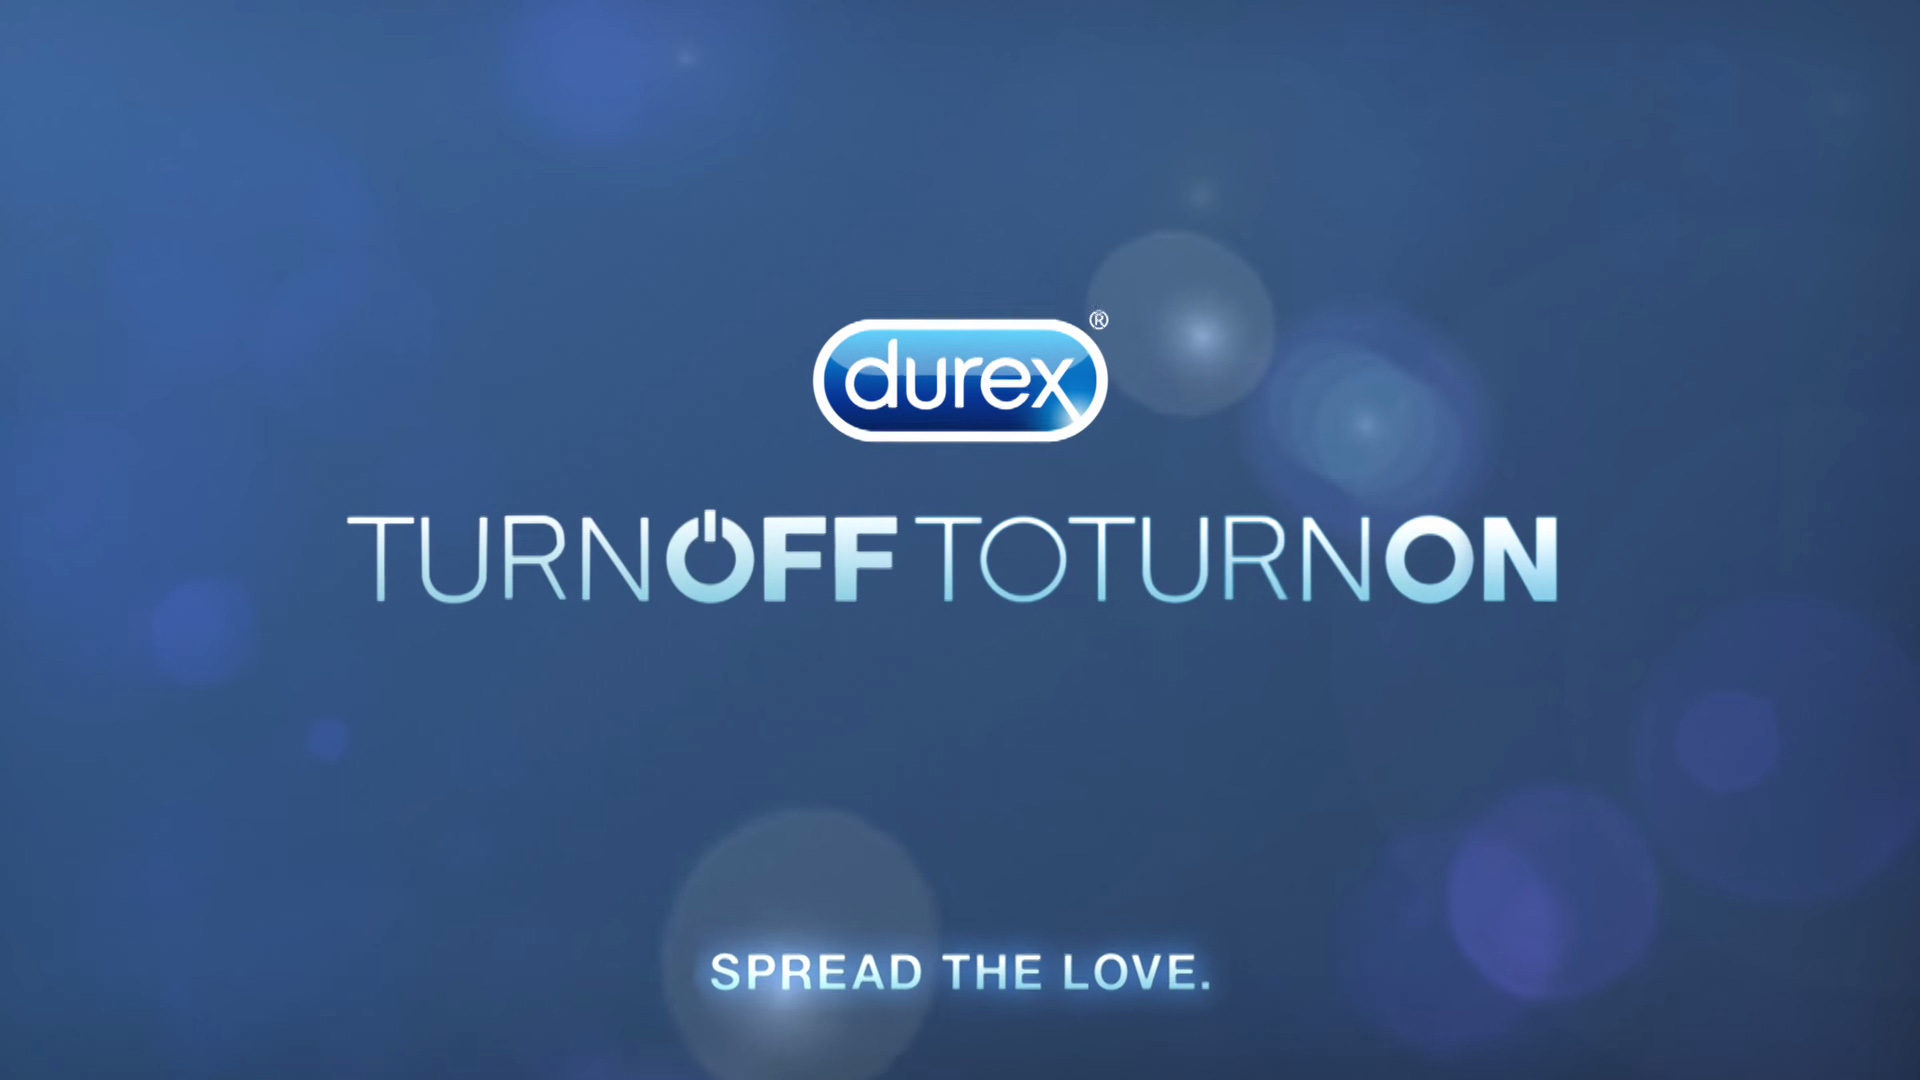 Why Businesses Like Durex Are Doing Content Marketing & Why You Should Too